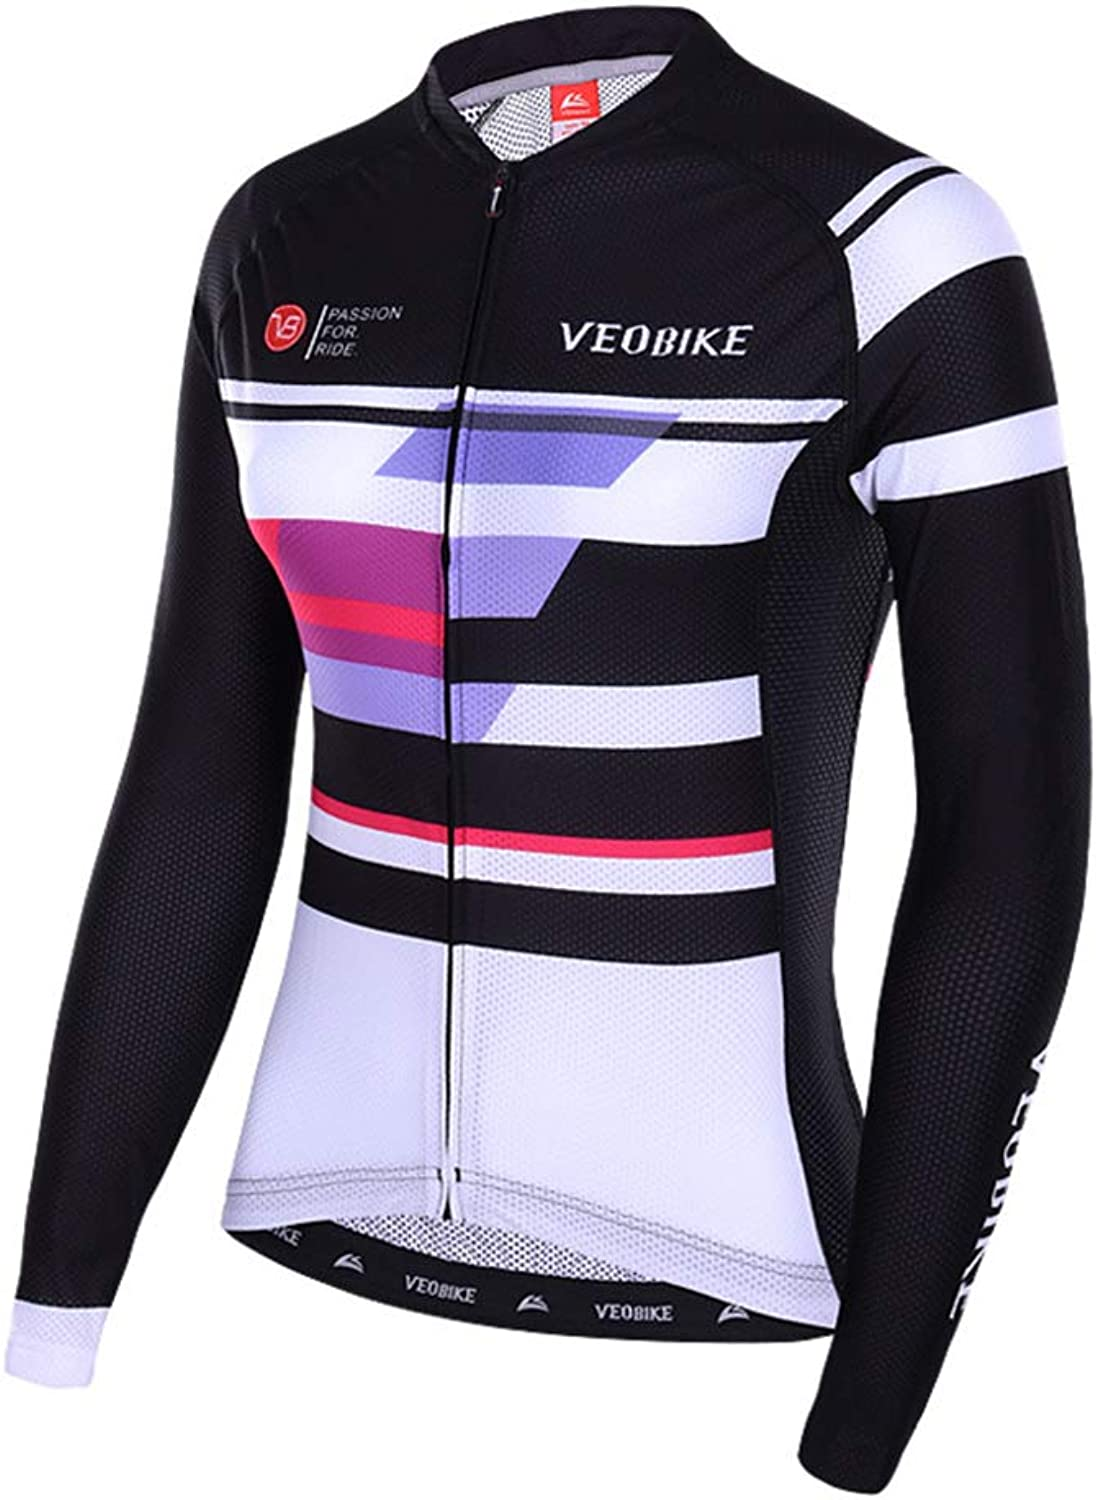 Cycling Suits Sets,One Piece Cycling Suit Women,QuickDrying Breathable,Reflective,Perspiration,Soft,Outdoor Riding Essential